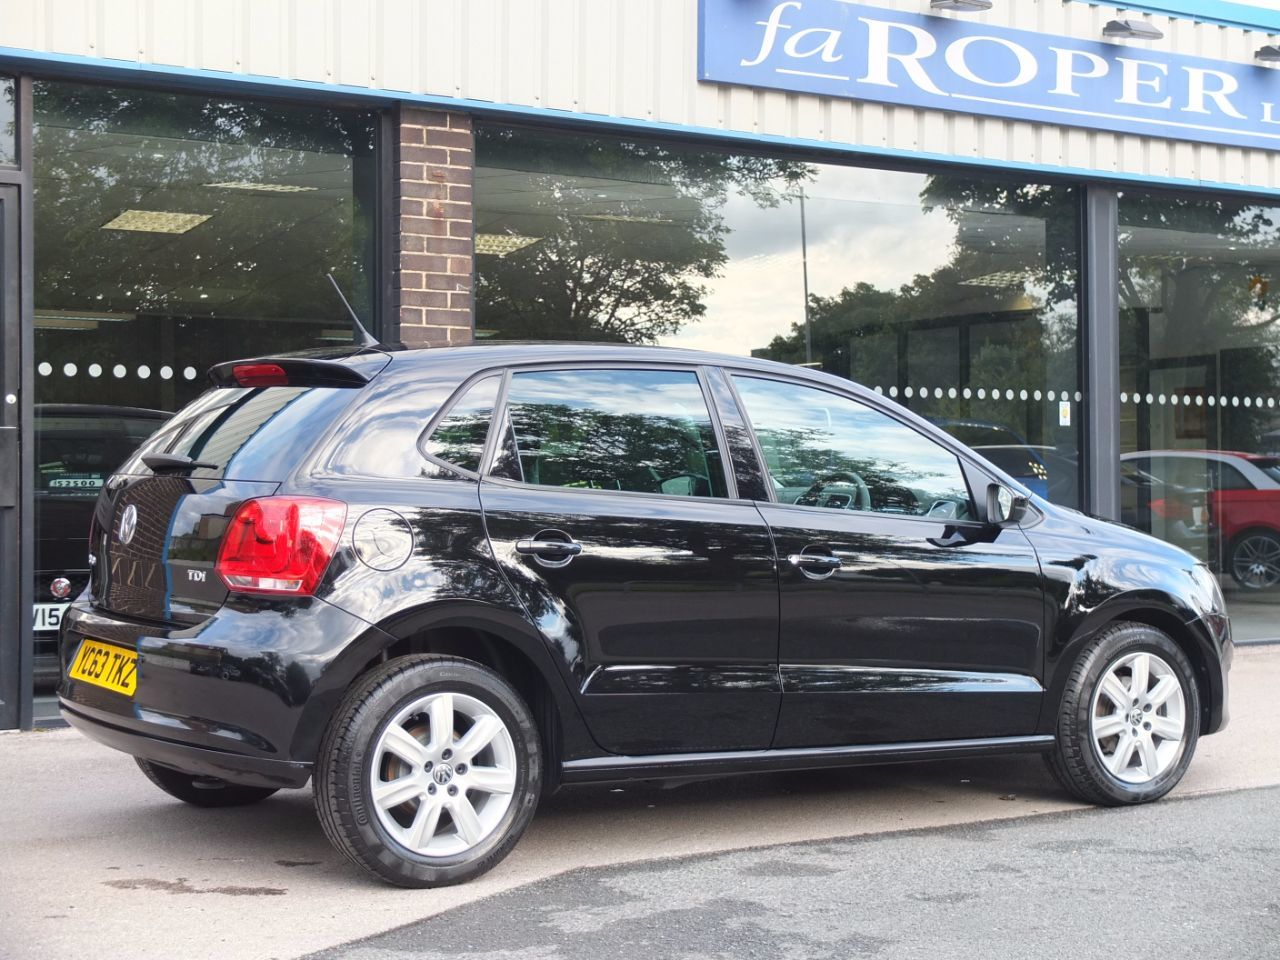 Volkswagen Polo 1.2 TDI Match Edition 5 door Hatchback Diesel Diamond Black Metallic